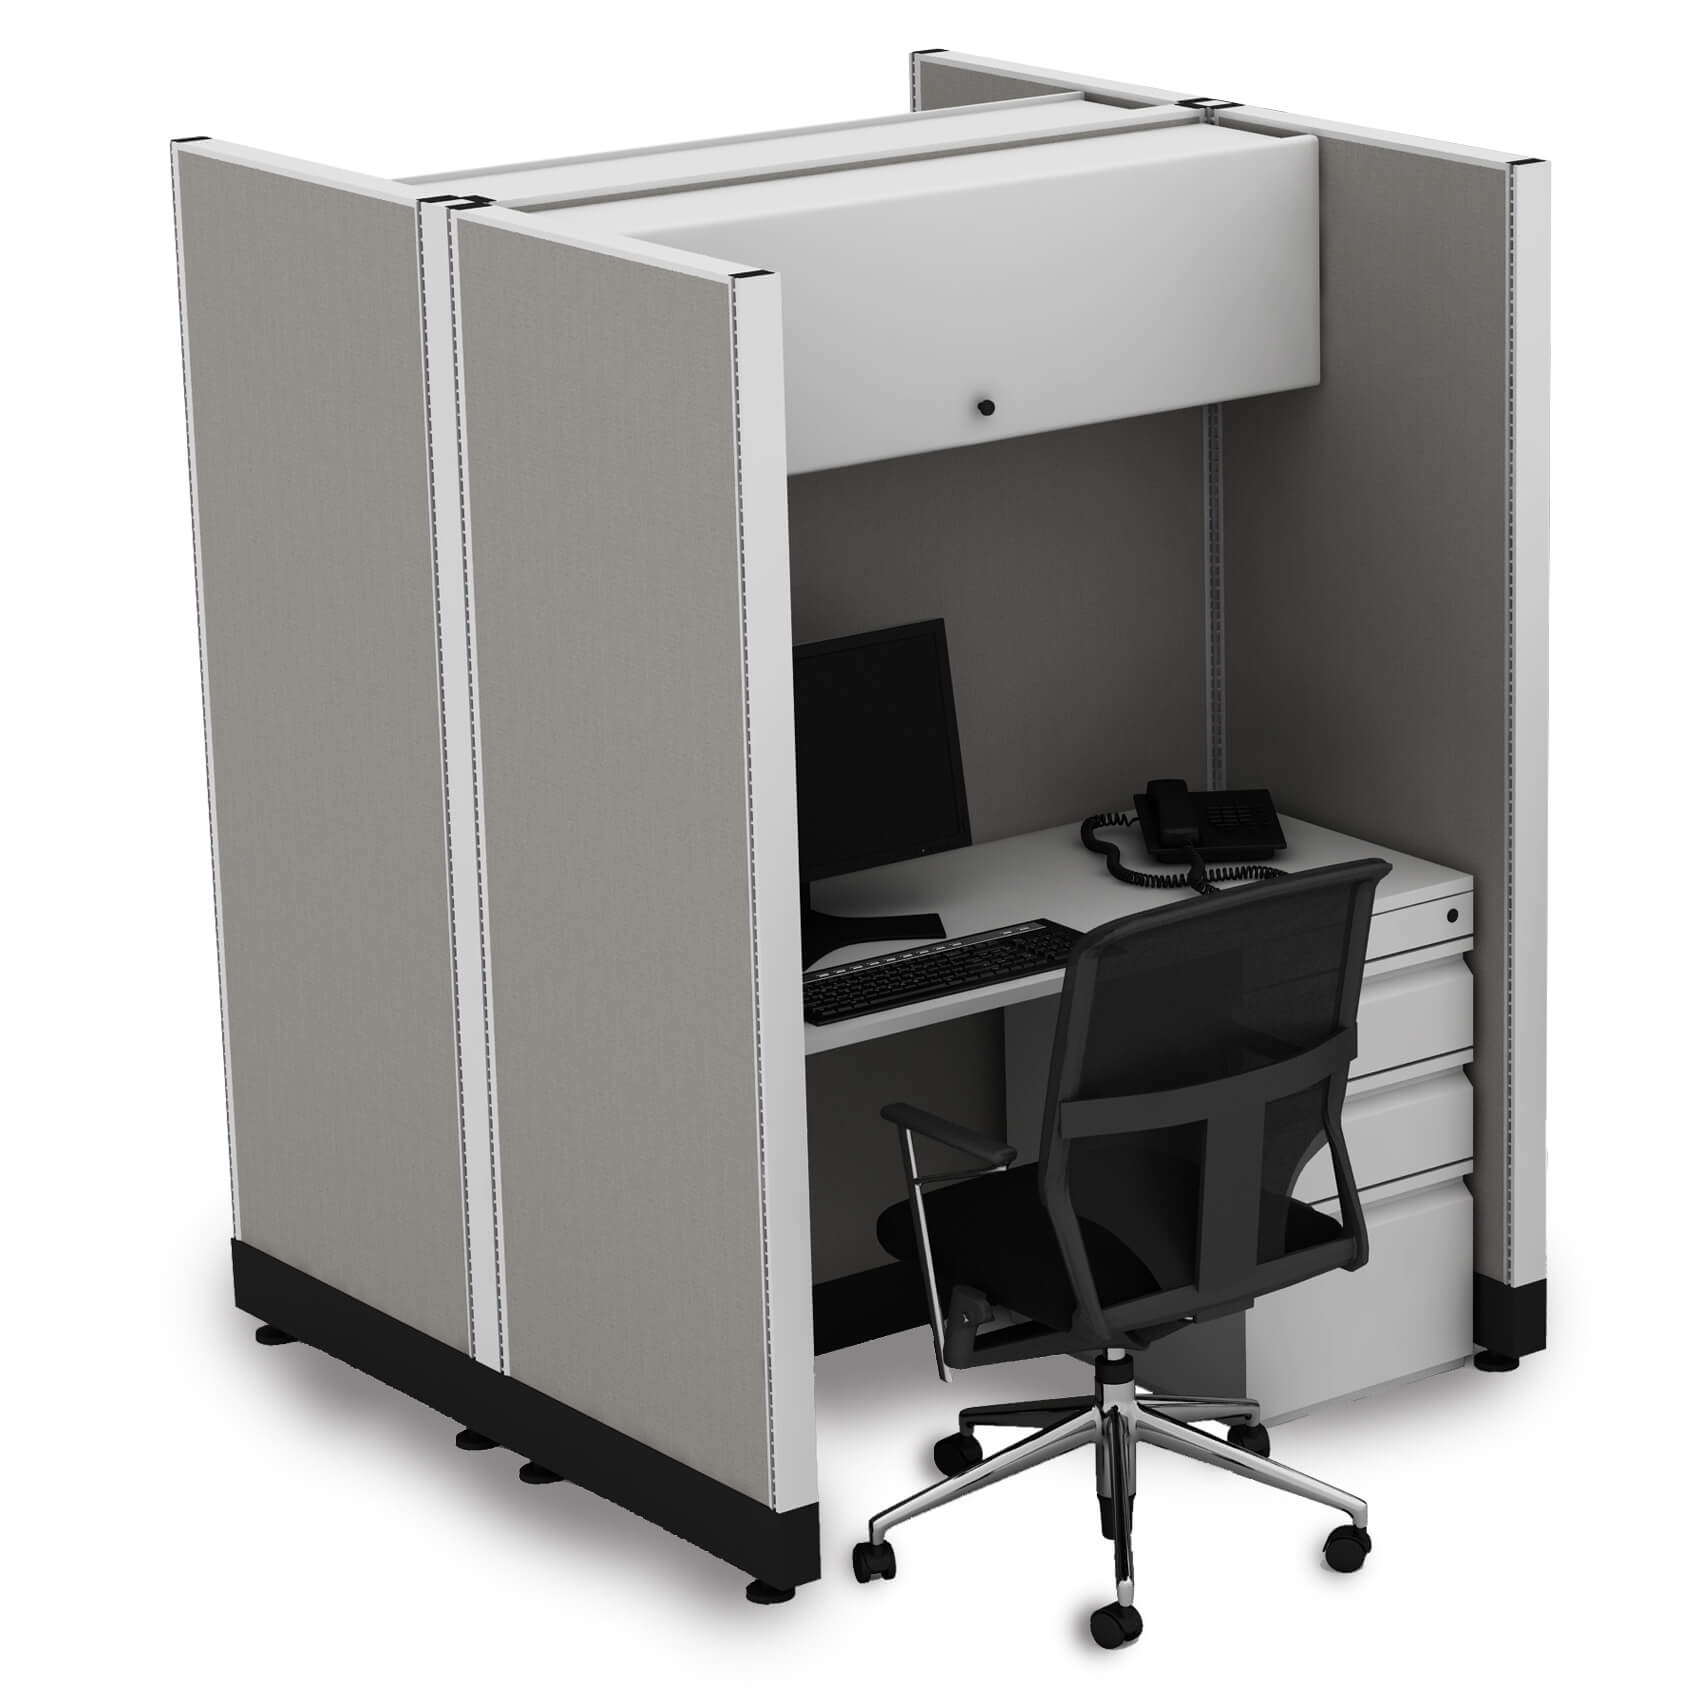 hot-desking-hoteling-stations-2-pack-powered.jpg